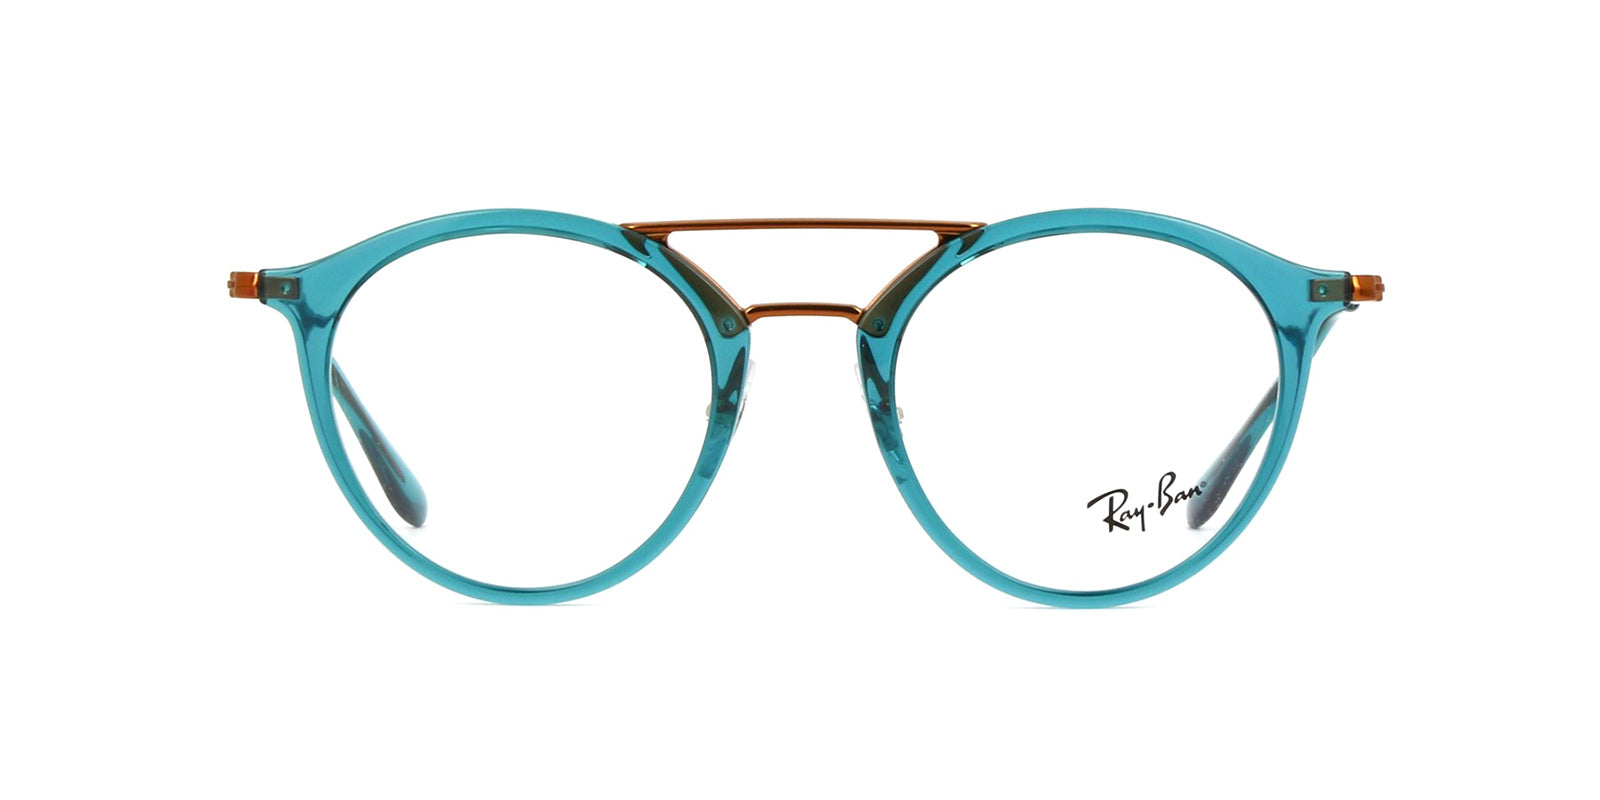 Ray Ban Eyeglasses RB7097 5632 RX-ABLE 49mm